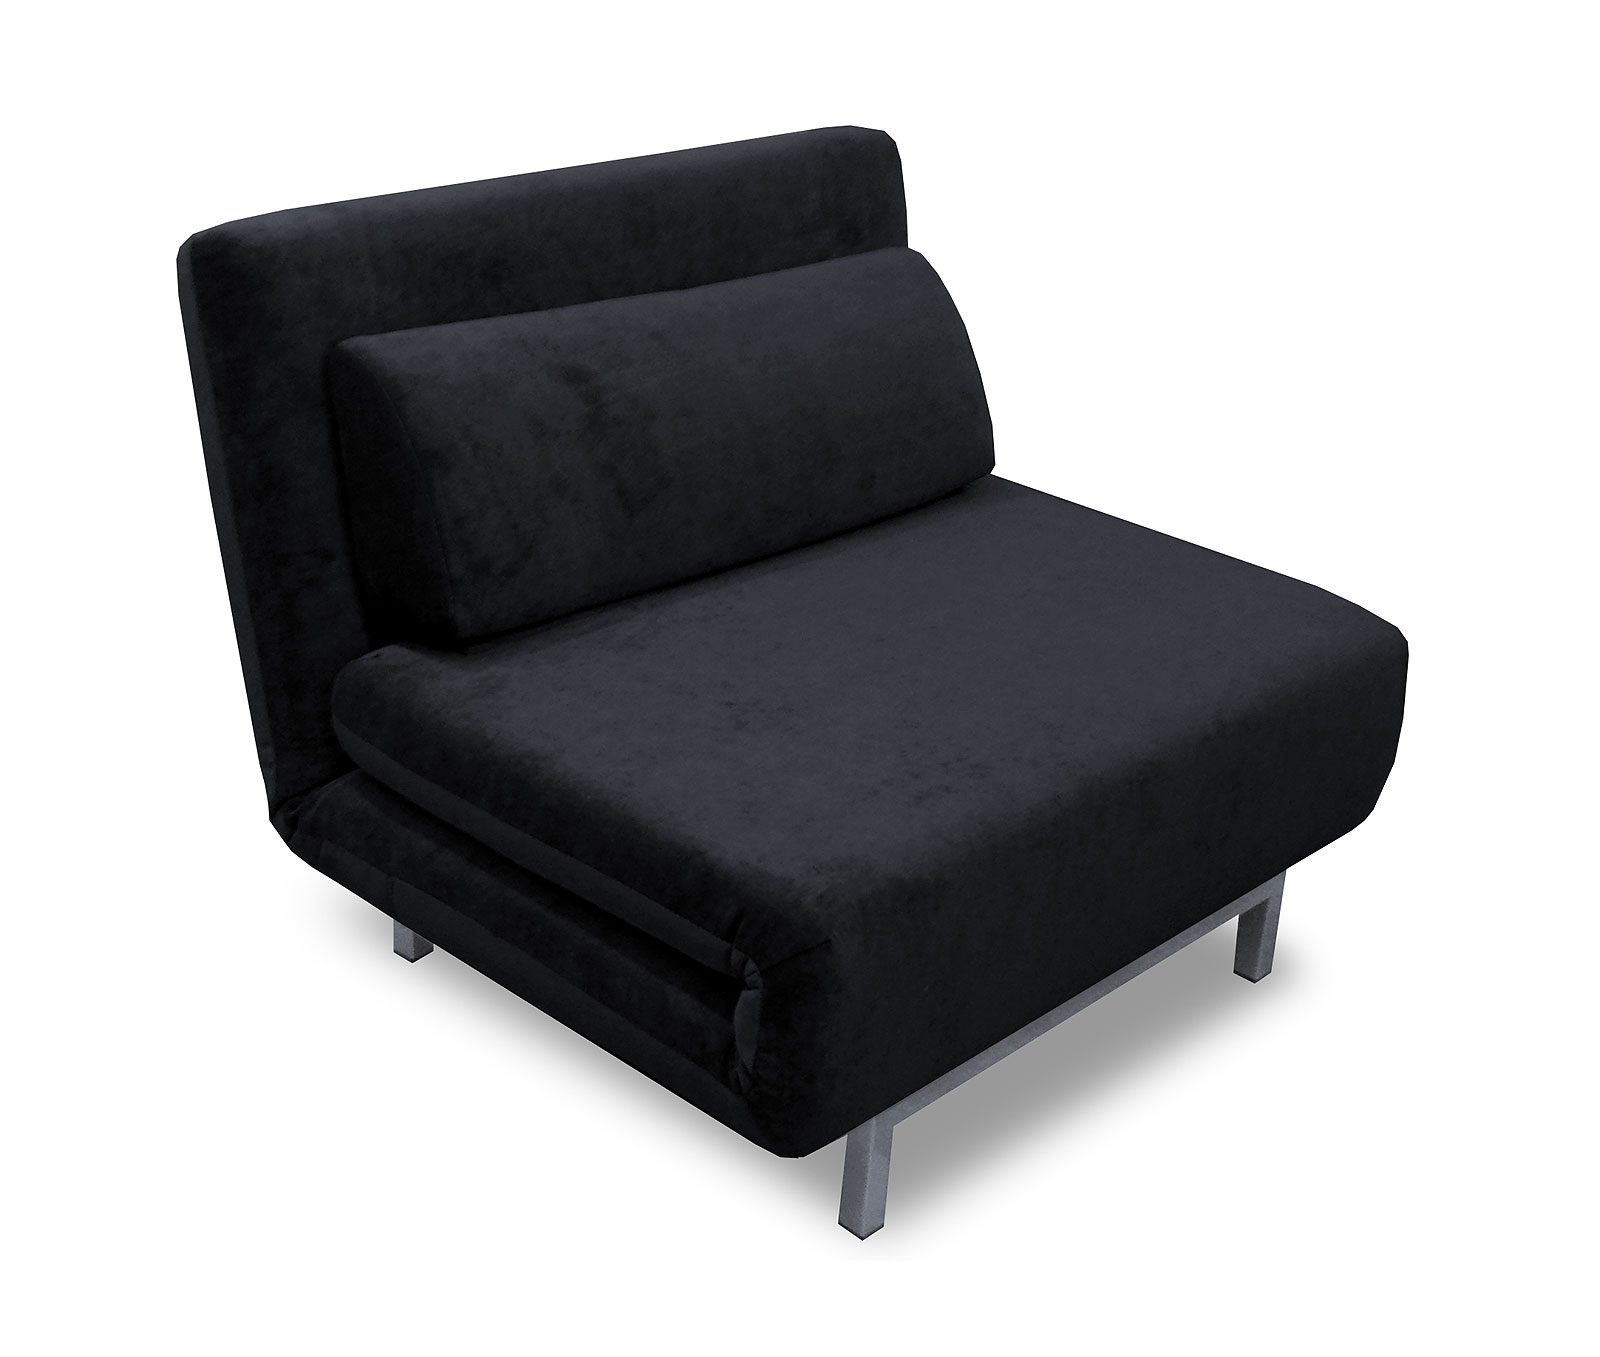 Black Convertible Chair Bed Home Decor Ideas